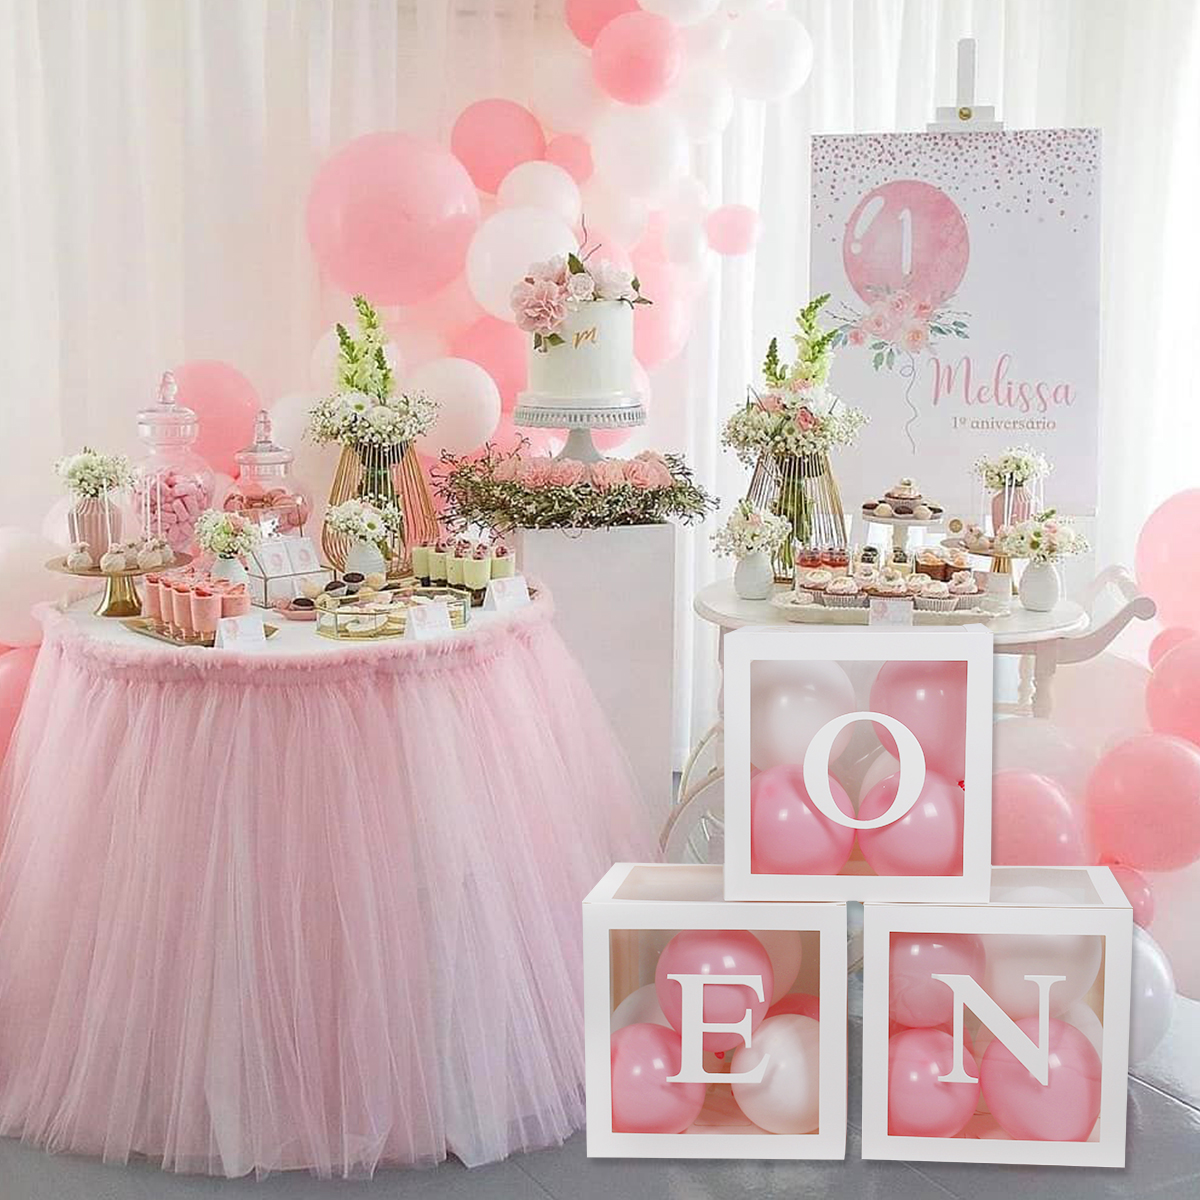 First Birthday Balloon Boxes For Party Decorations 1st Birthday Balloon Blocks Decor with ONE Letter Boy Girl Baby Shower Decor